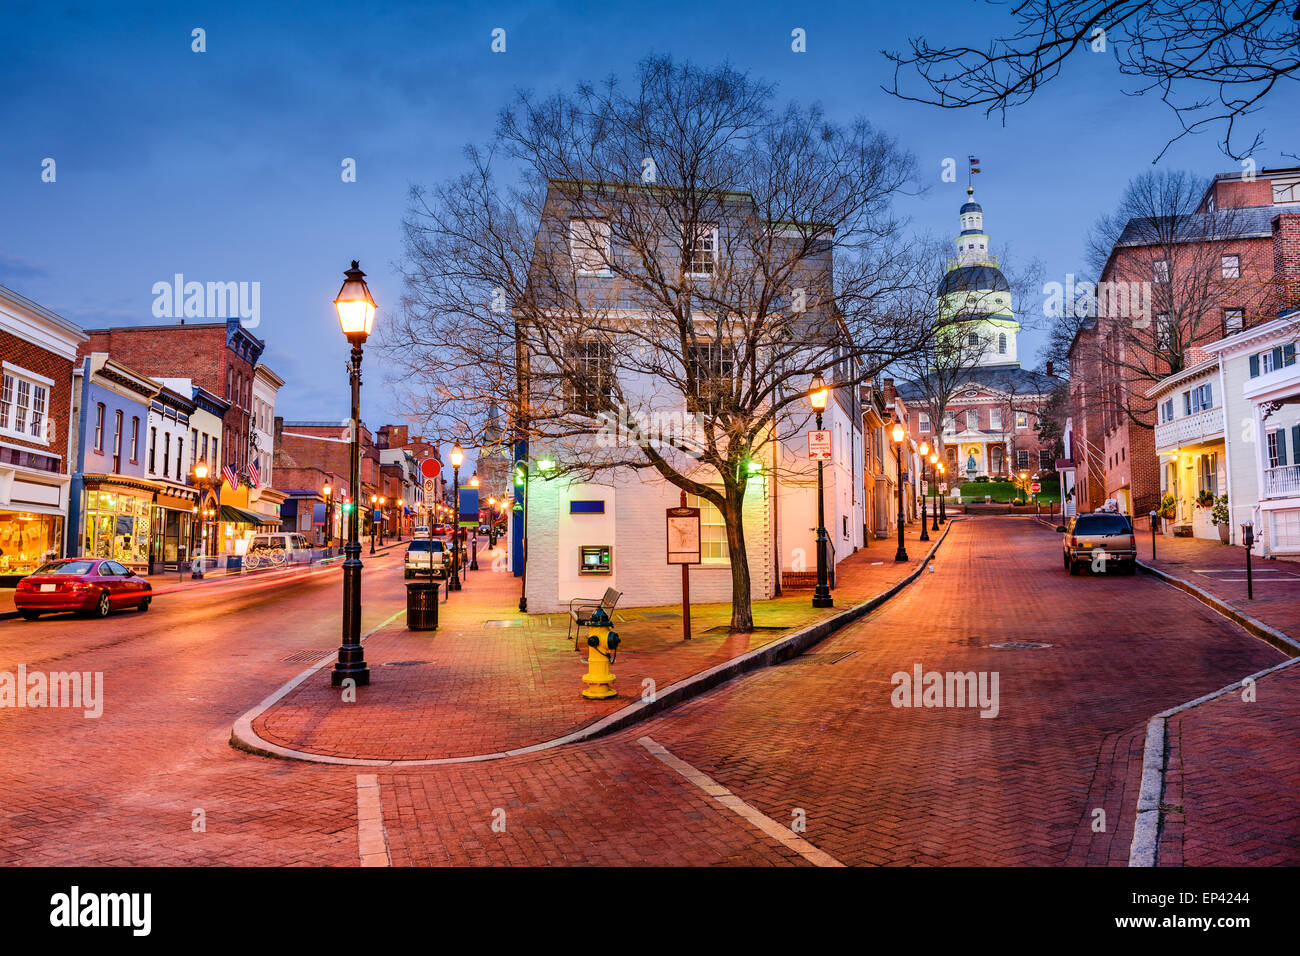 Annapolis, Maryland, USA downtown cityscape on Main Street. - Stock Image